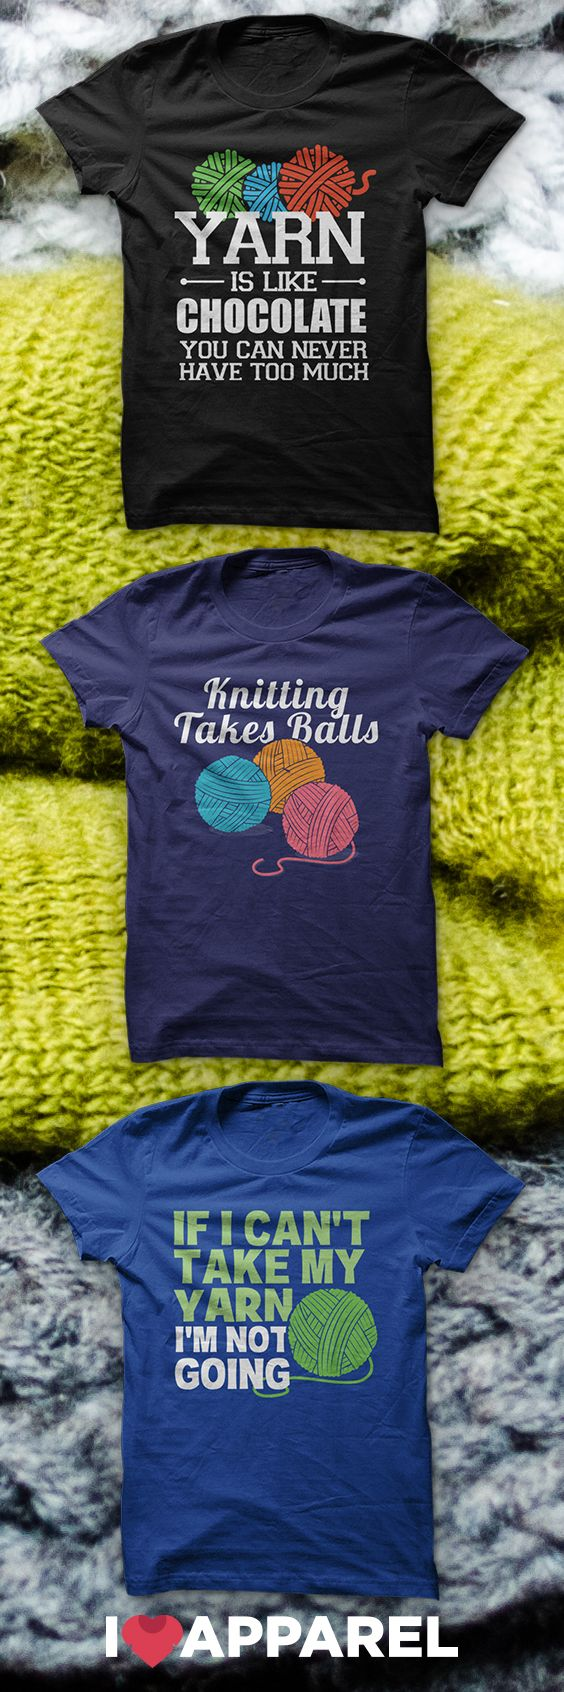 Buy Any 2 Items And Get FREE US Shipping. Check out our collection of knitting shirts.